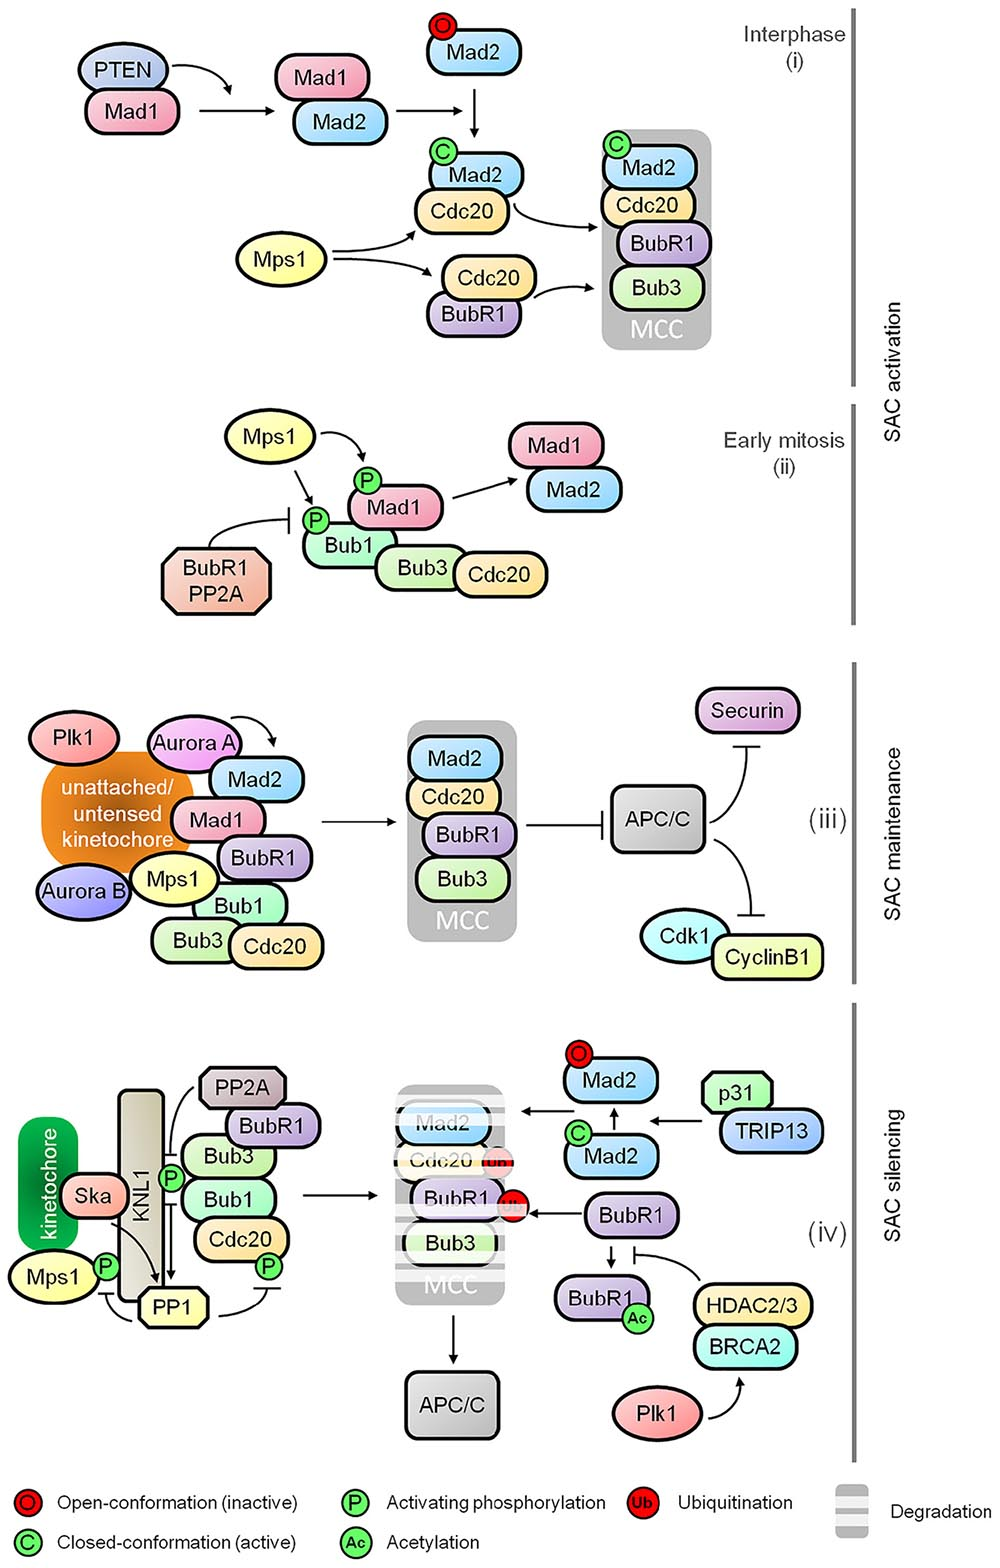 Frontiers | Mapping Mitotic Death: Functional Integration of